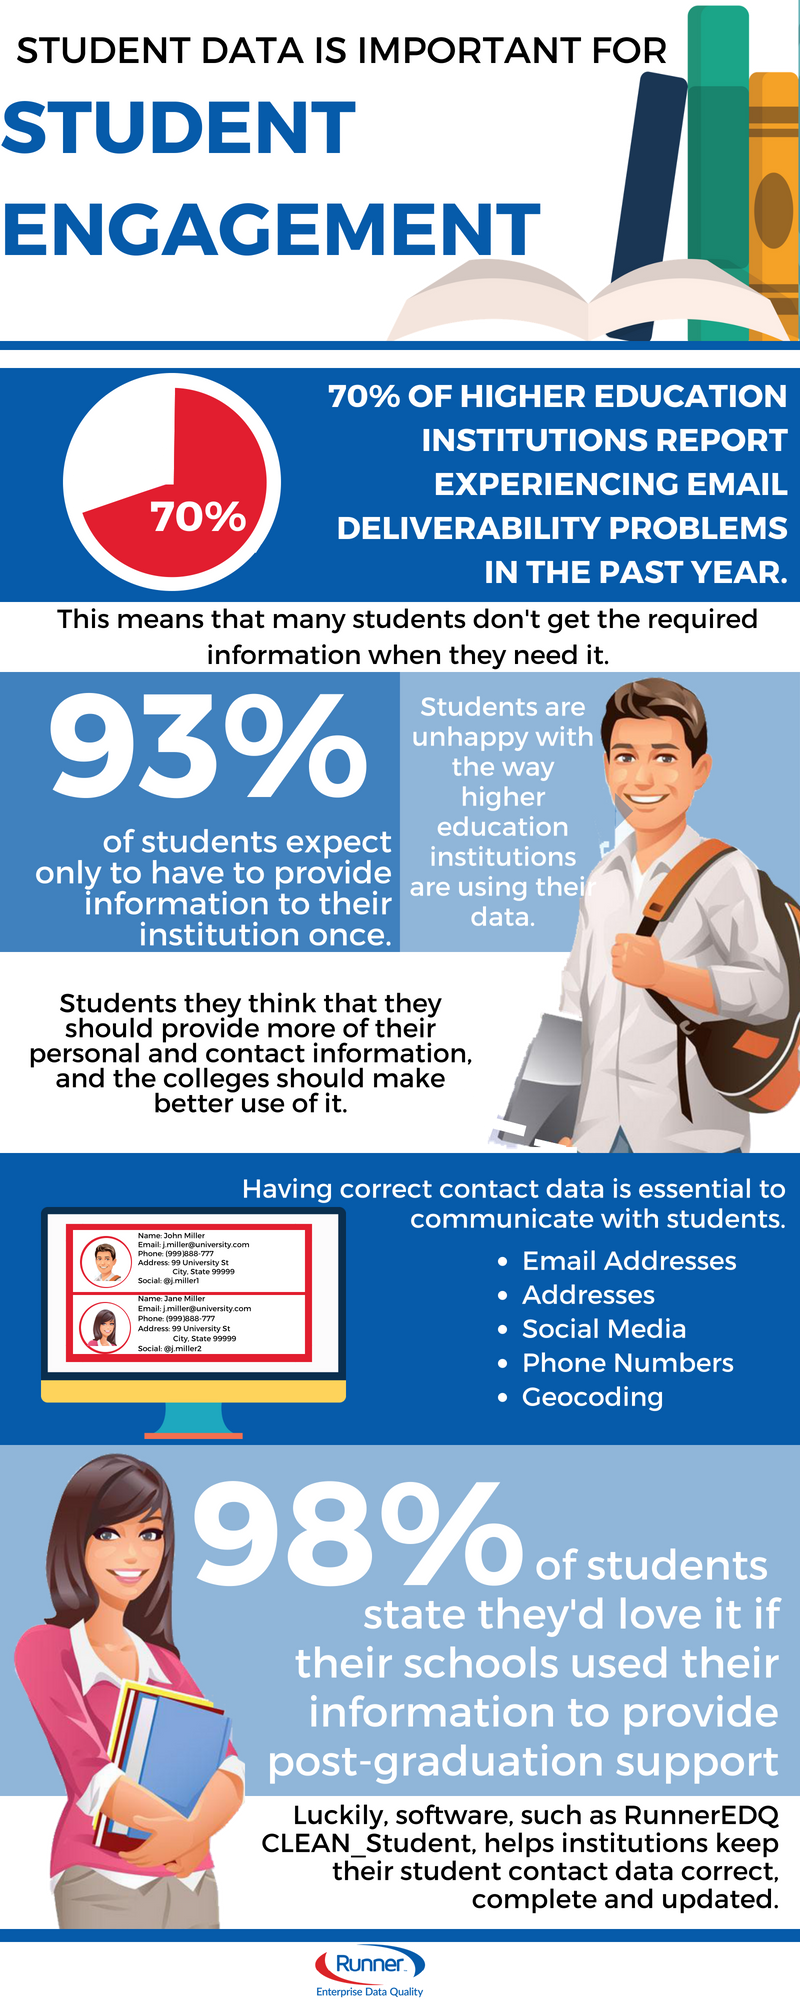 Visit Runner EDQ for more information about our student data quality solutions. It will help higher education institutions keep their student data clean and ensure increased engagement and happiness.